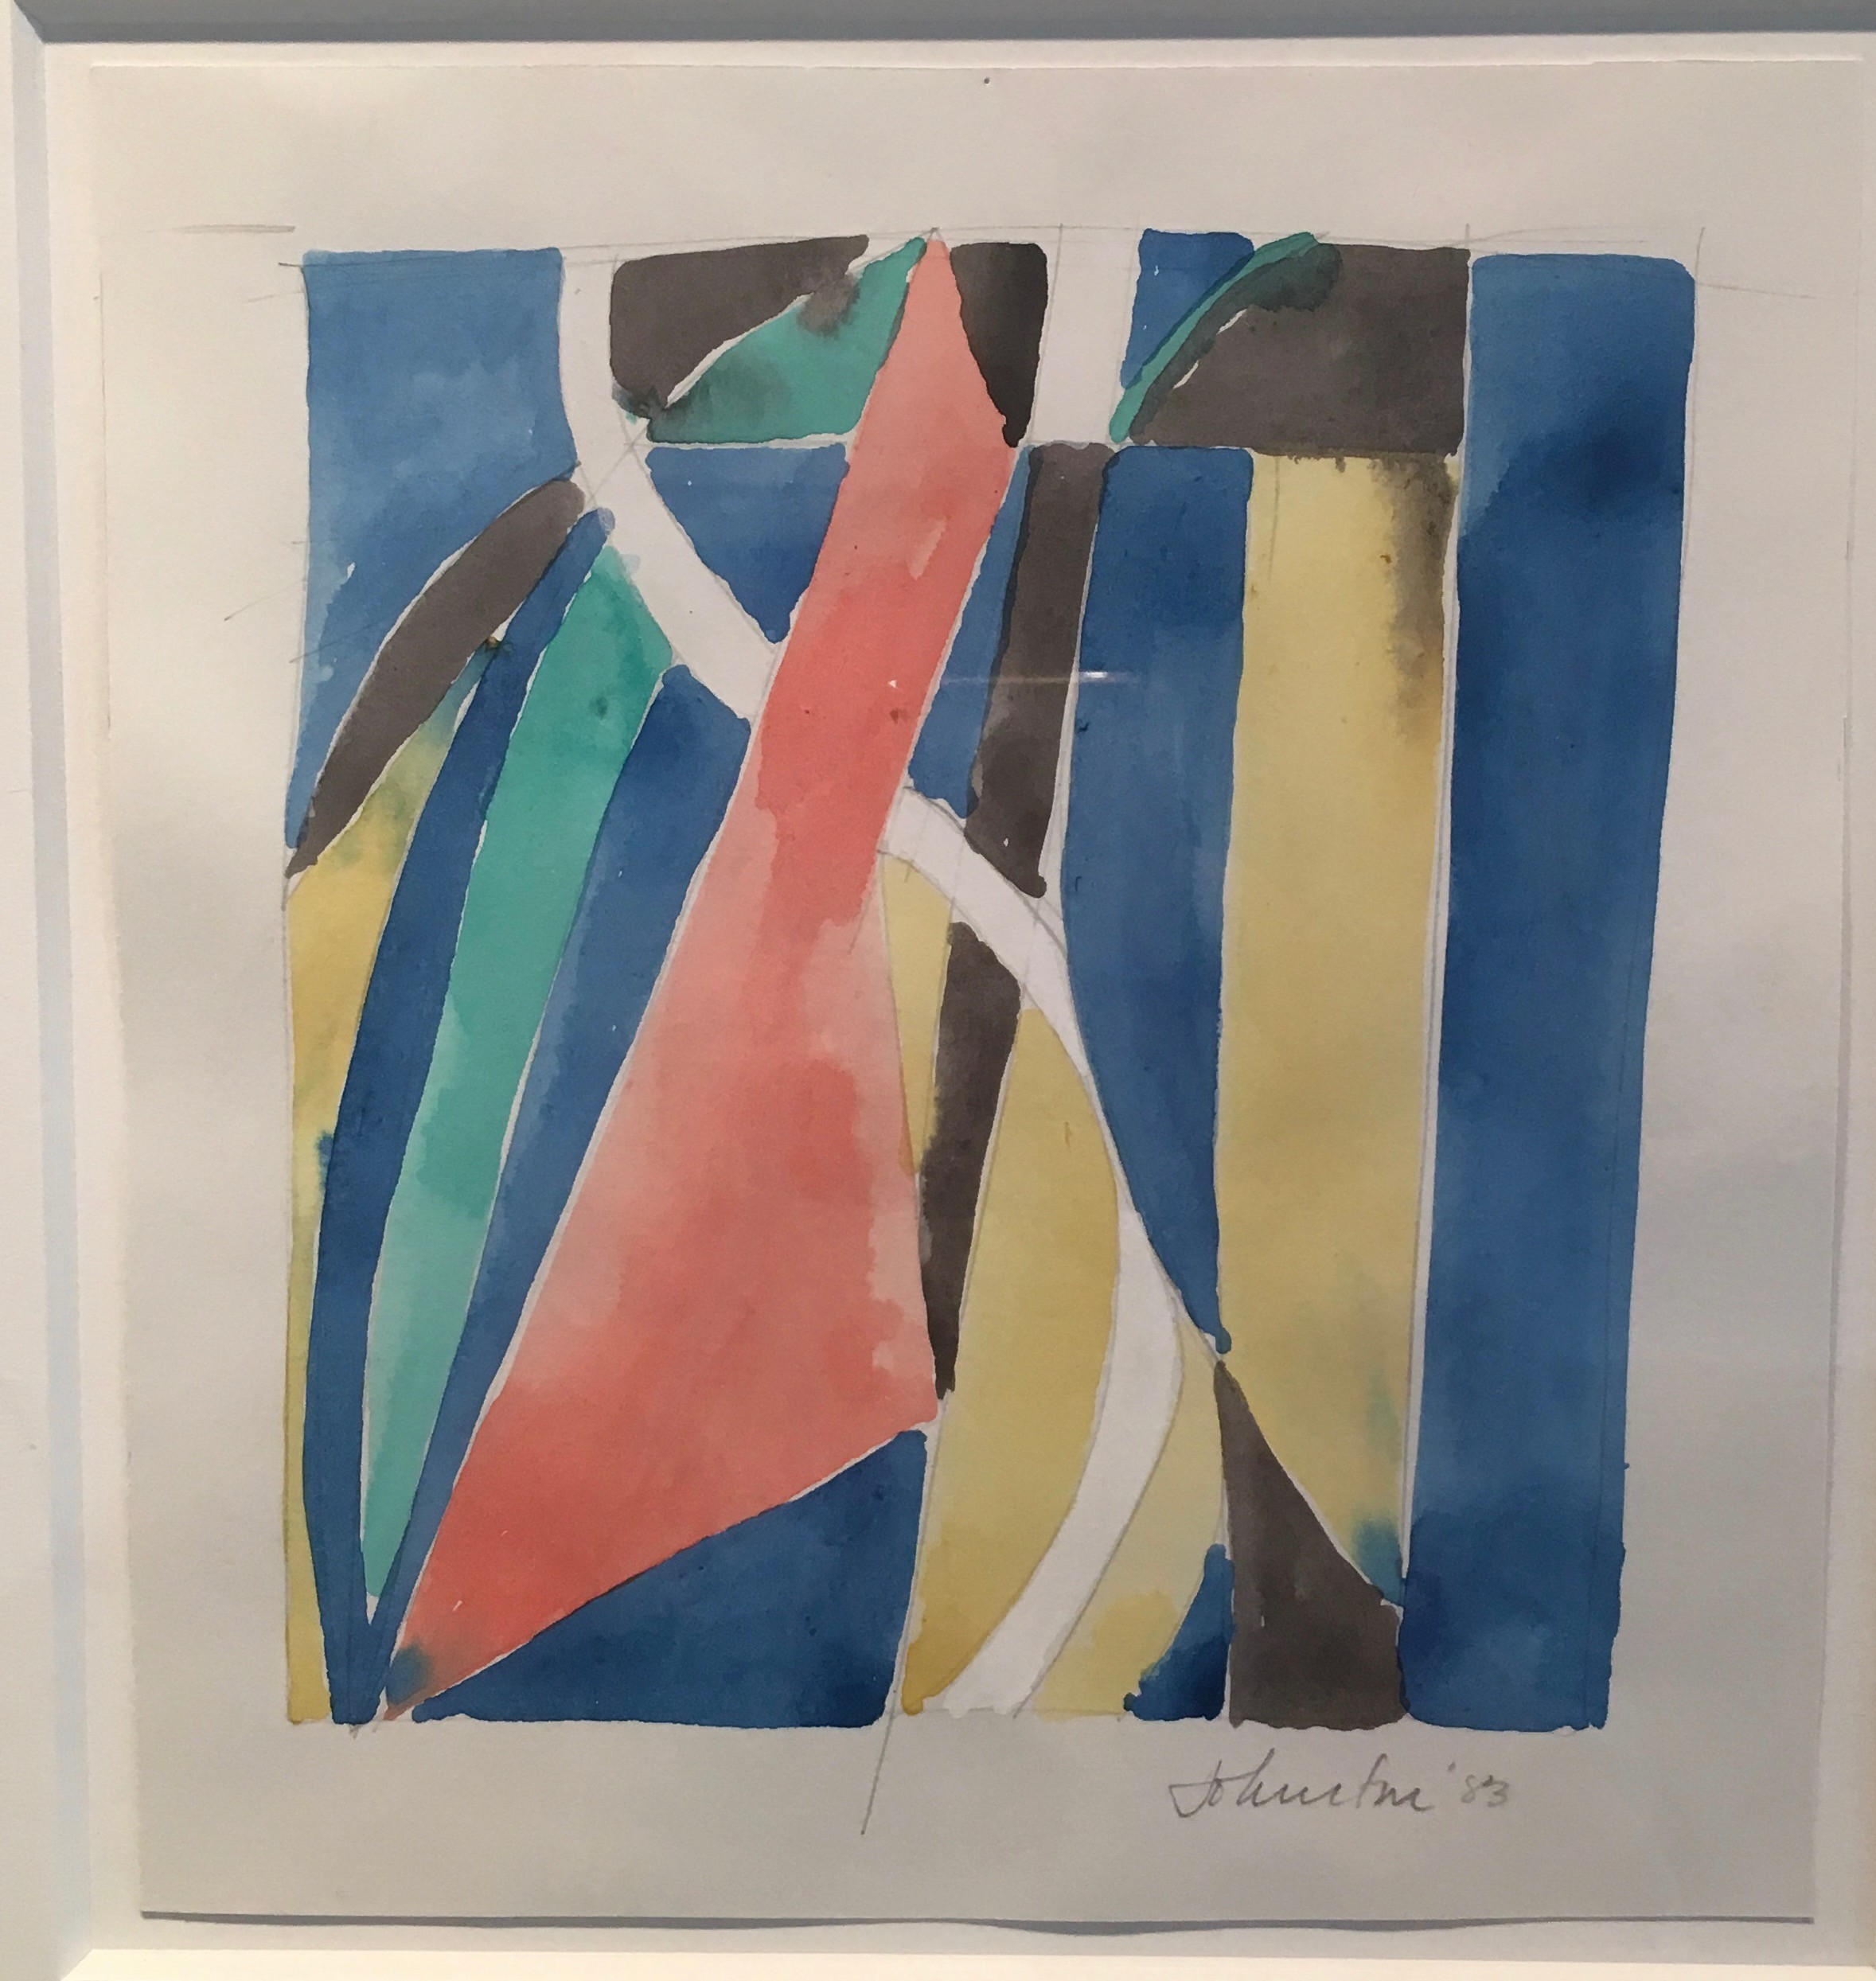 Untitled, Color Study , 1983 Acrylic and pencil on paper 9.50H x 8.75W inches